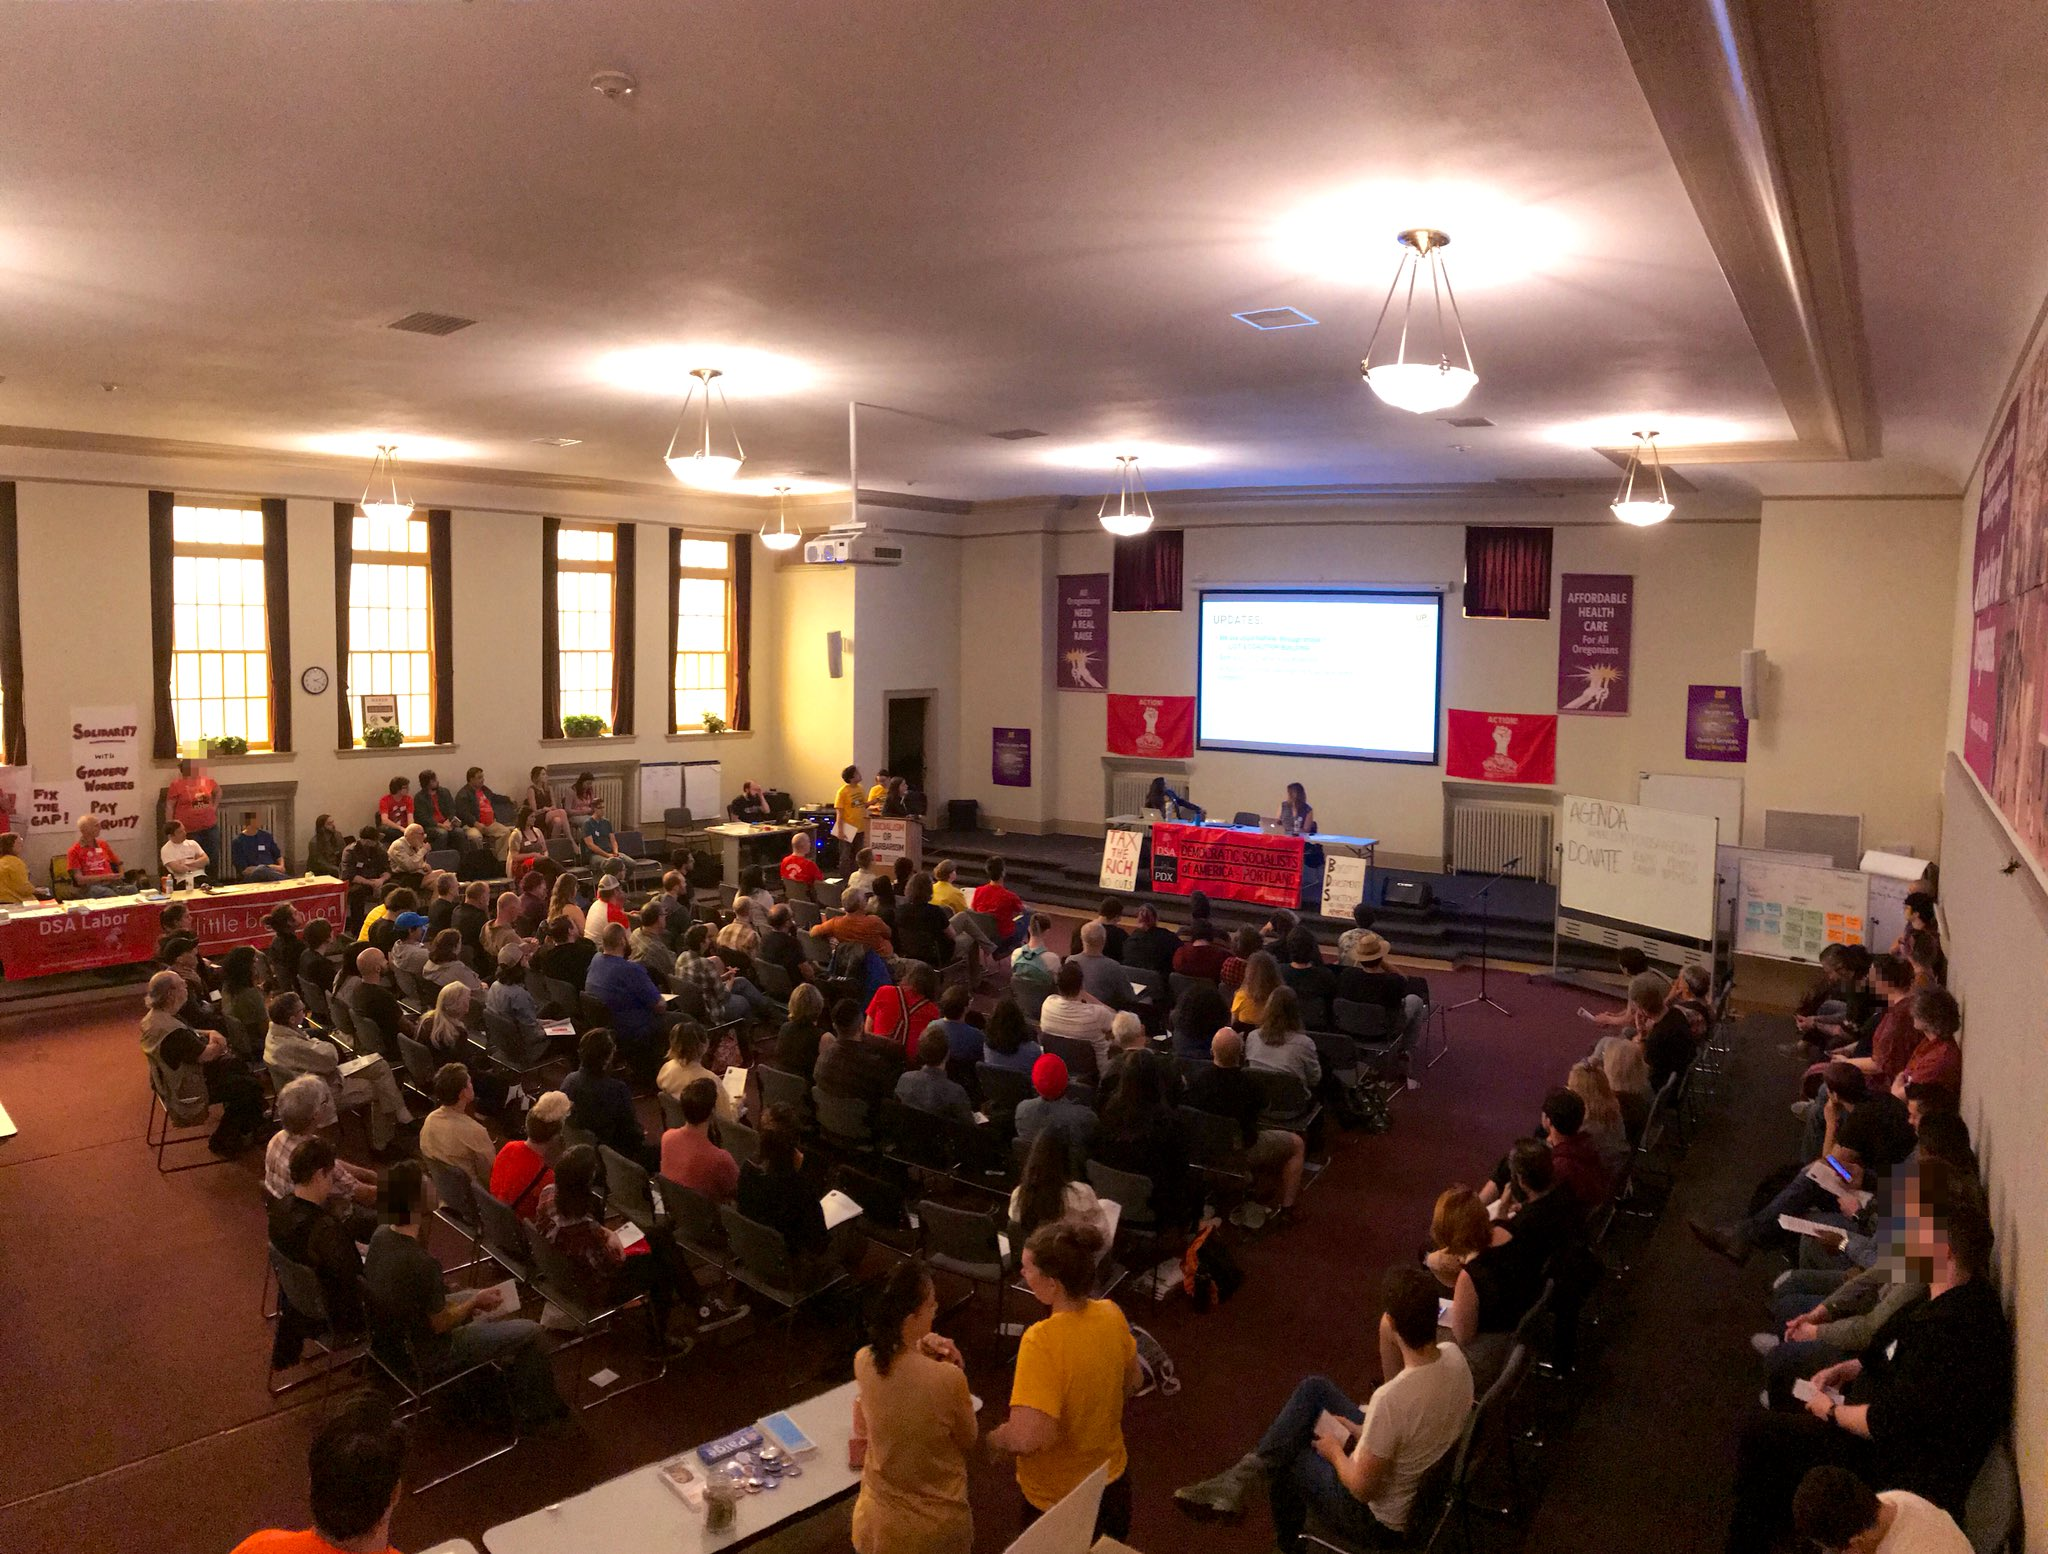 Photo of the September general meeting. 130 socialists in the room. DSA Banners strewn about.